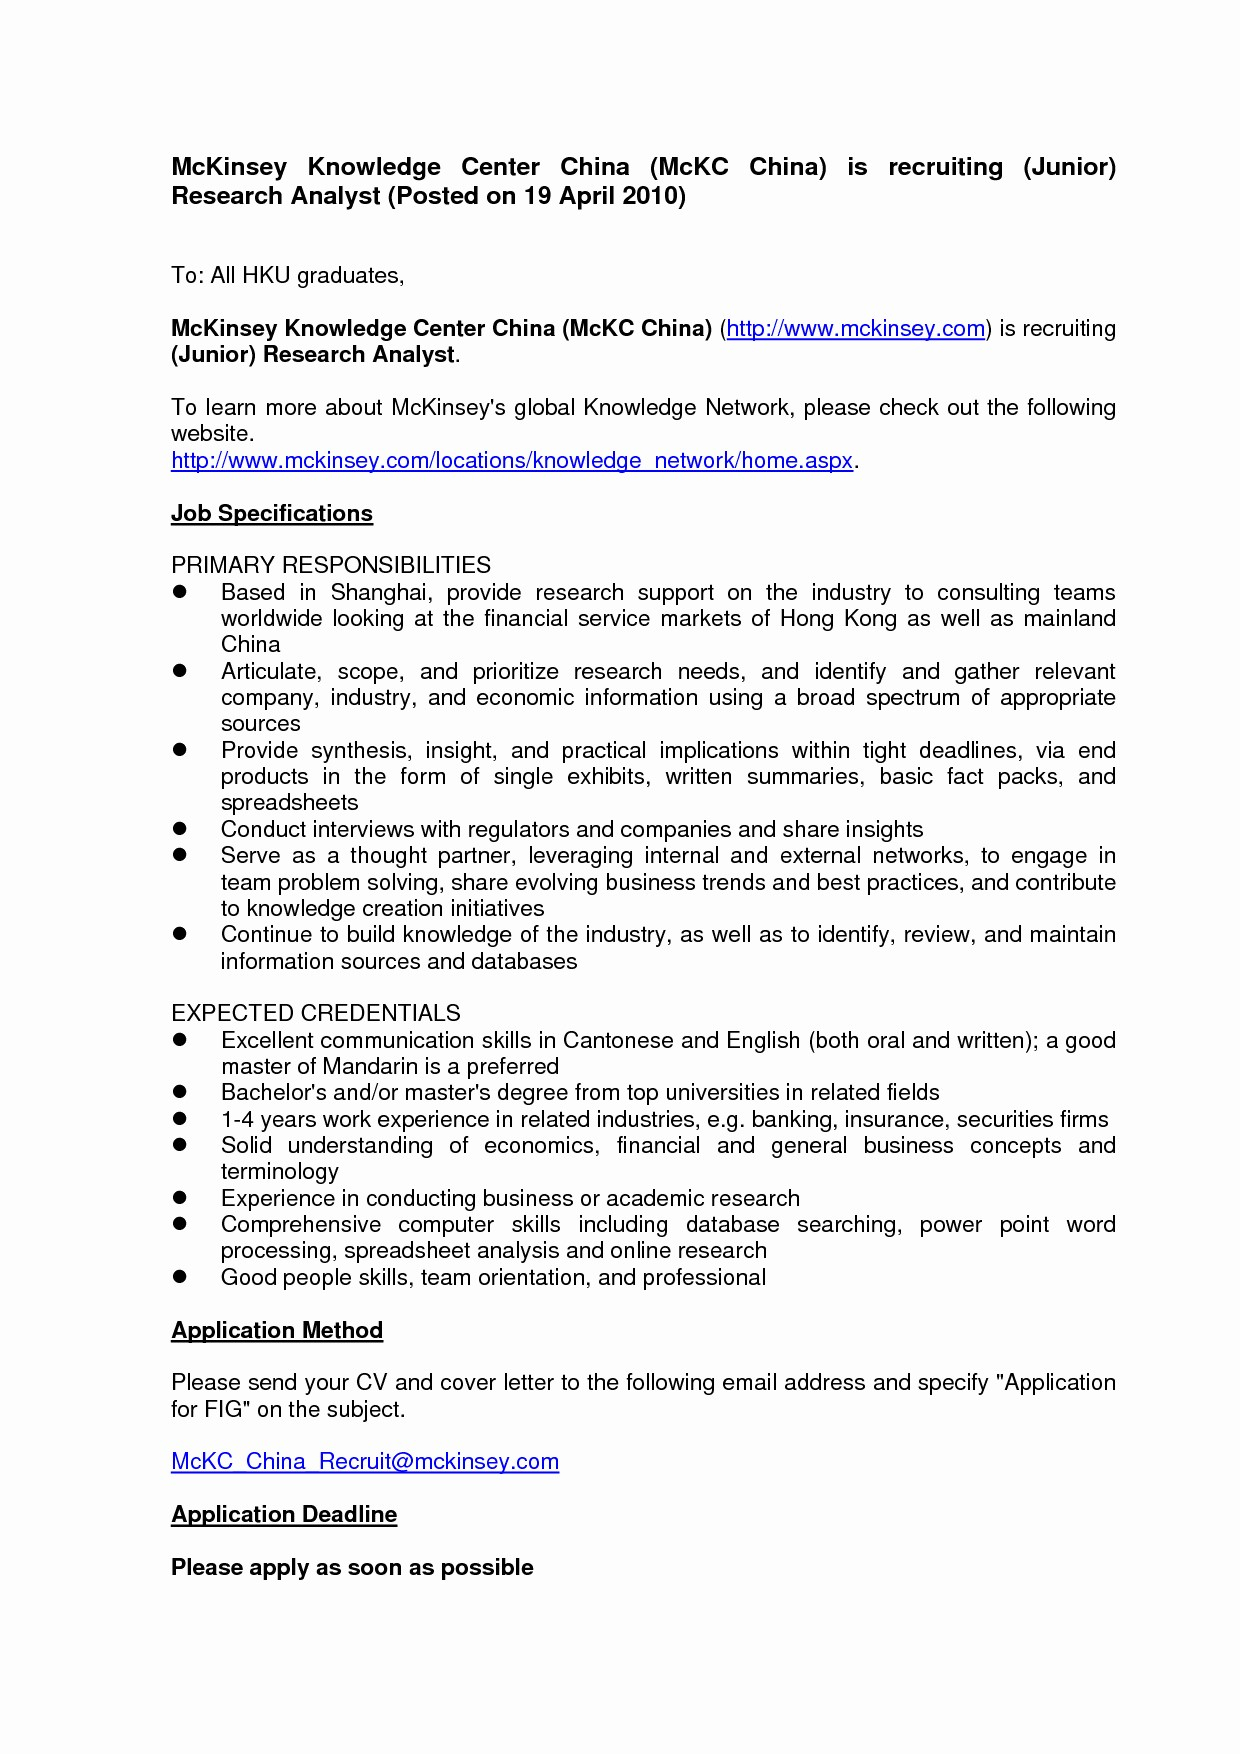 Simple Cover Letter Template for Job Application - Simple Job Application Cover Letter Best Resume Cover Letter